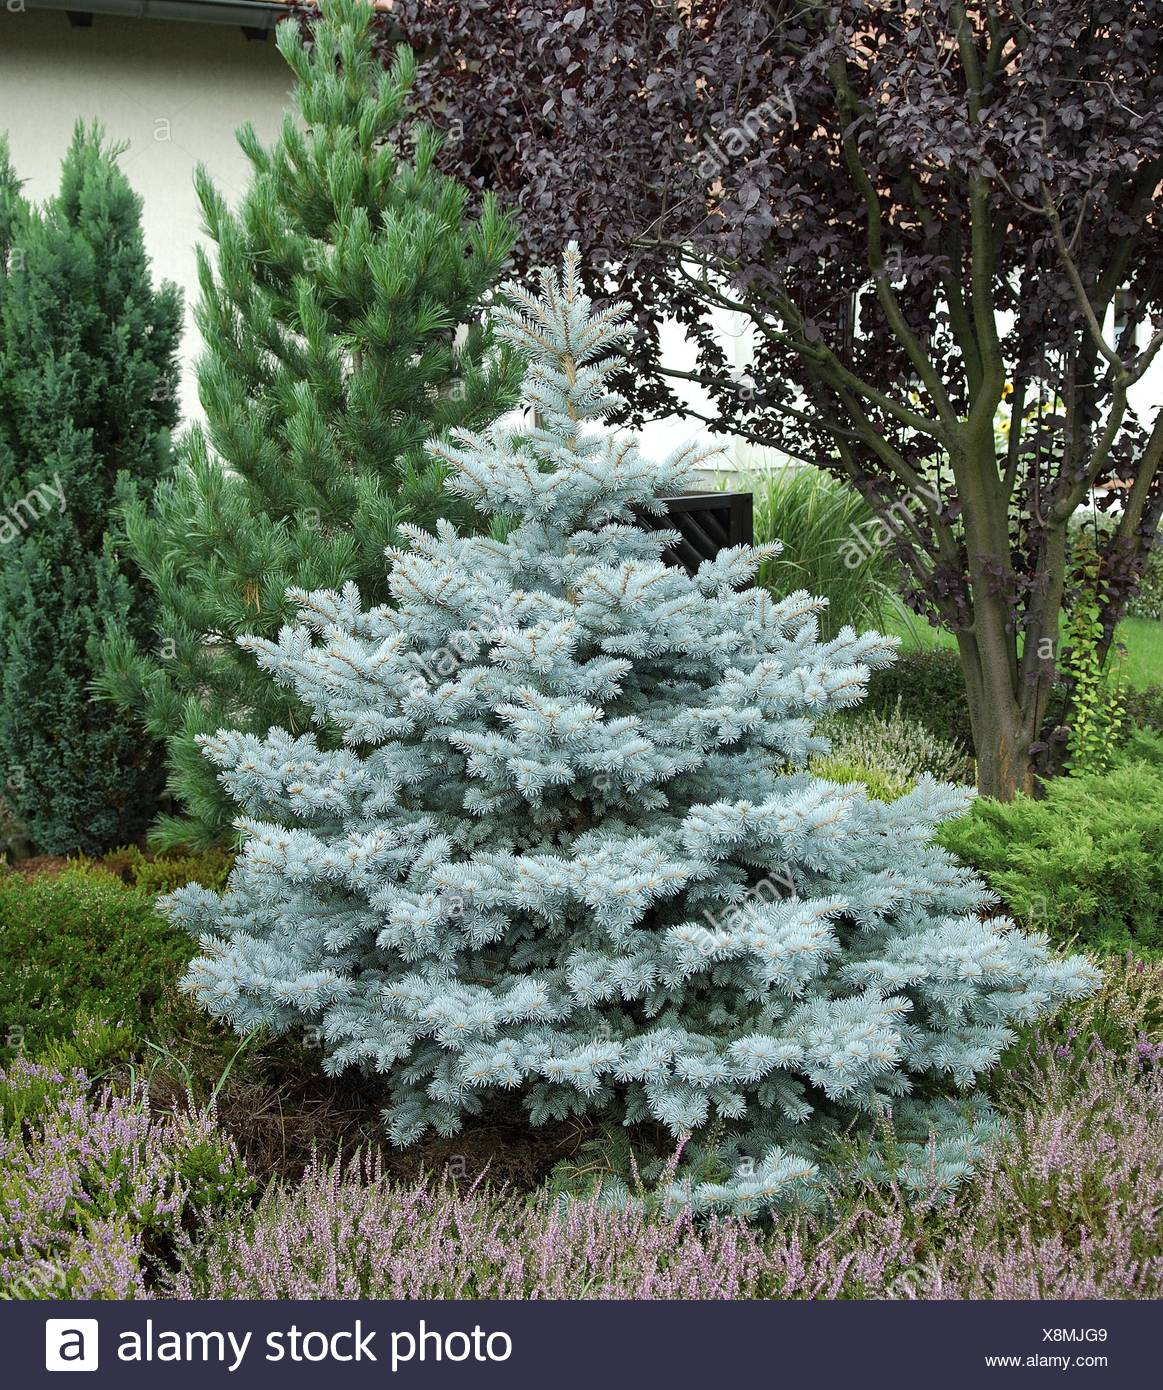 Colorado blue spruce (Picea pungens 'Koster', Picea pungens Koster), cultivar Koster - Stock Image